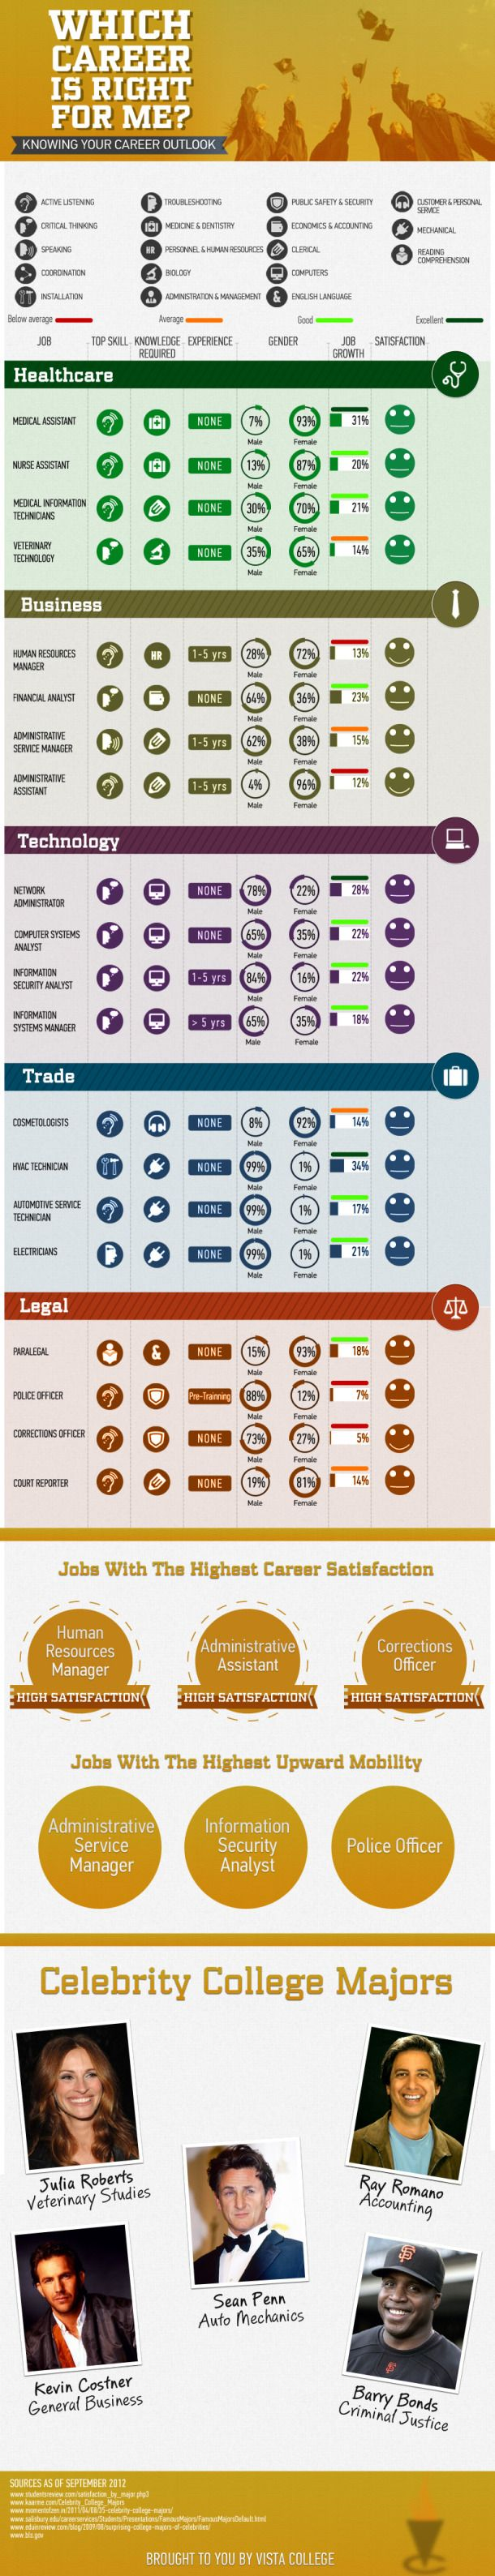 Which Career Is Right For Me [INFOGRAPHIC]